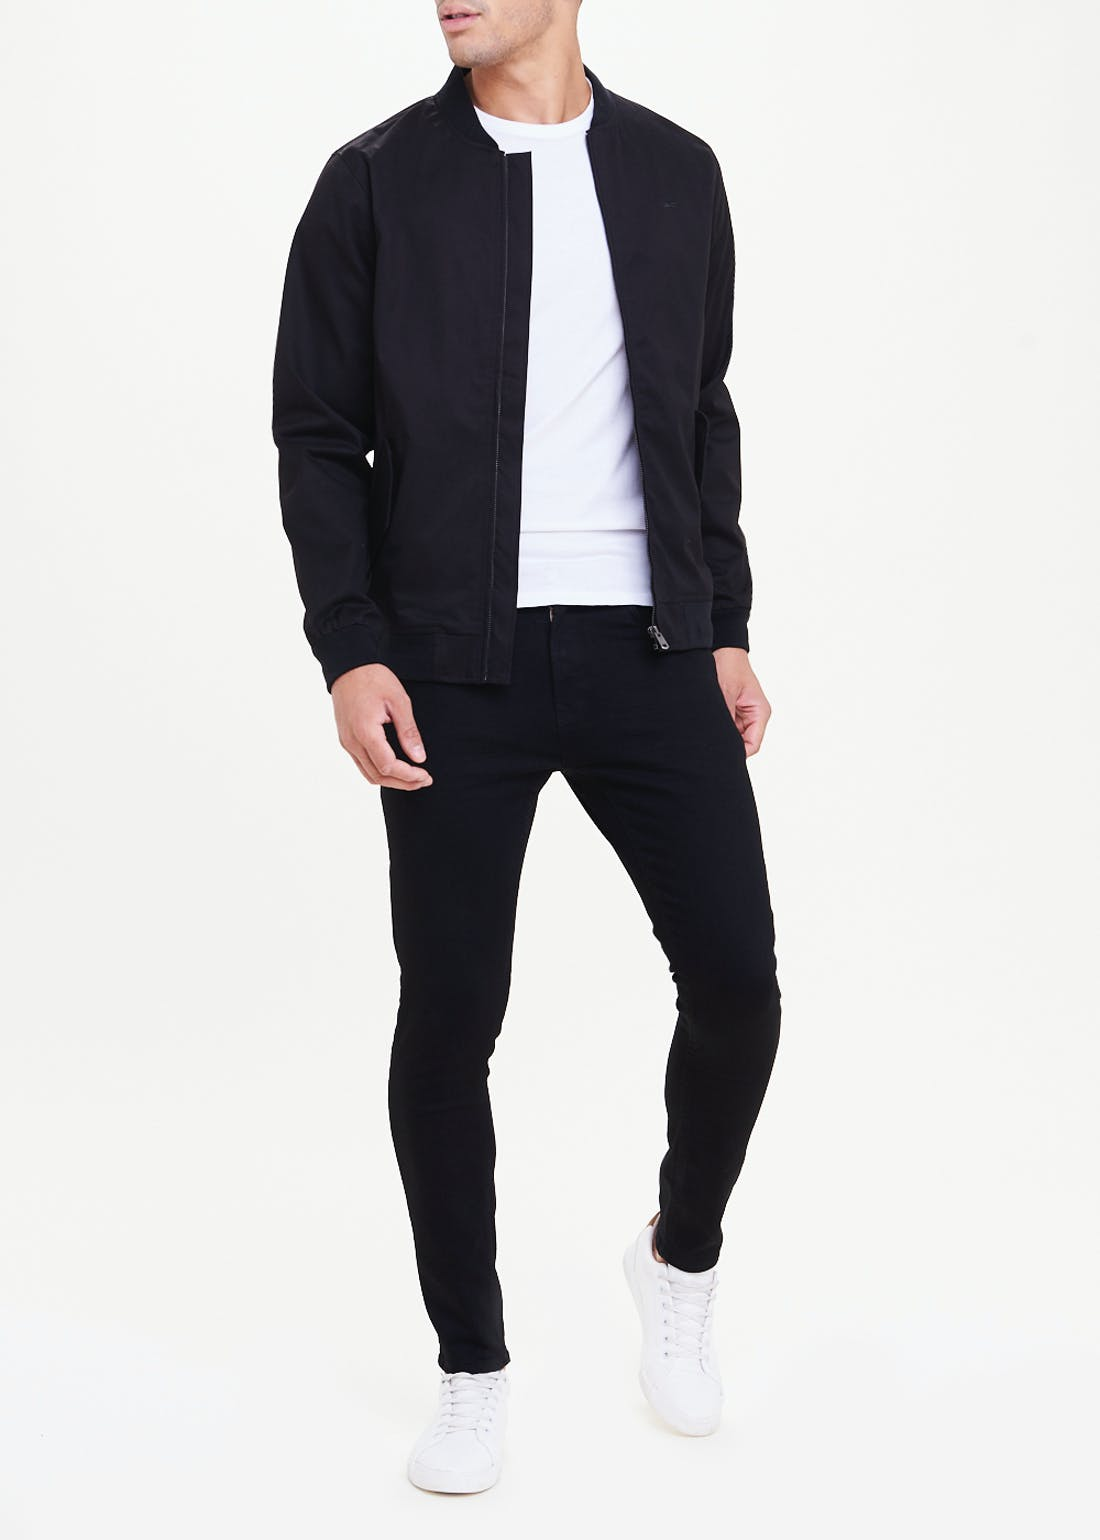 Black Showerproof Bomber Jacket